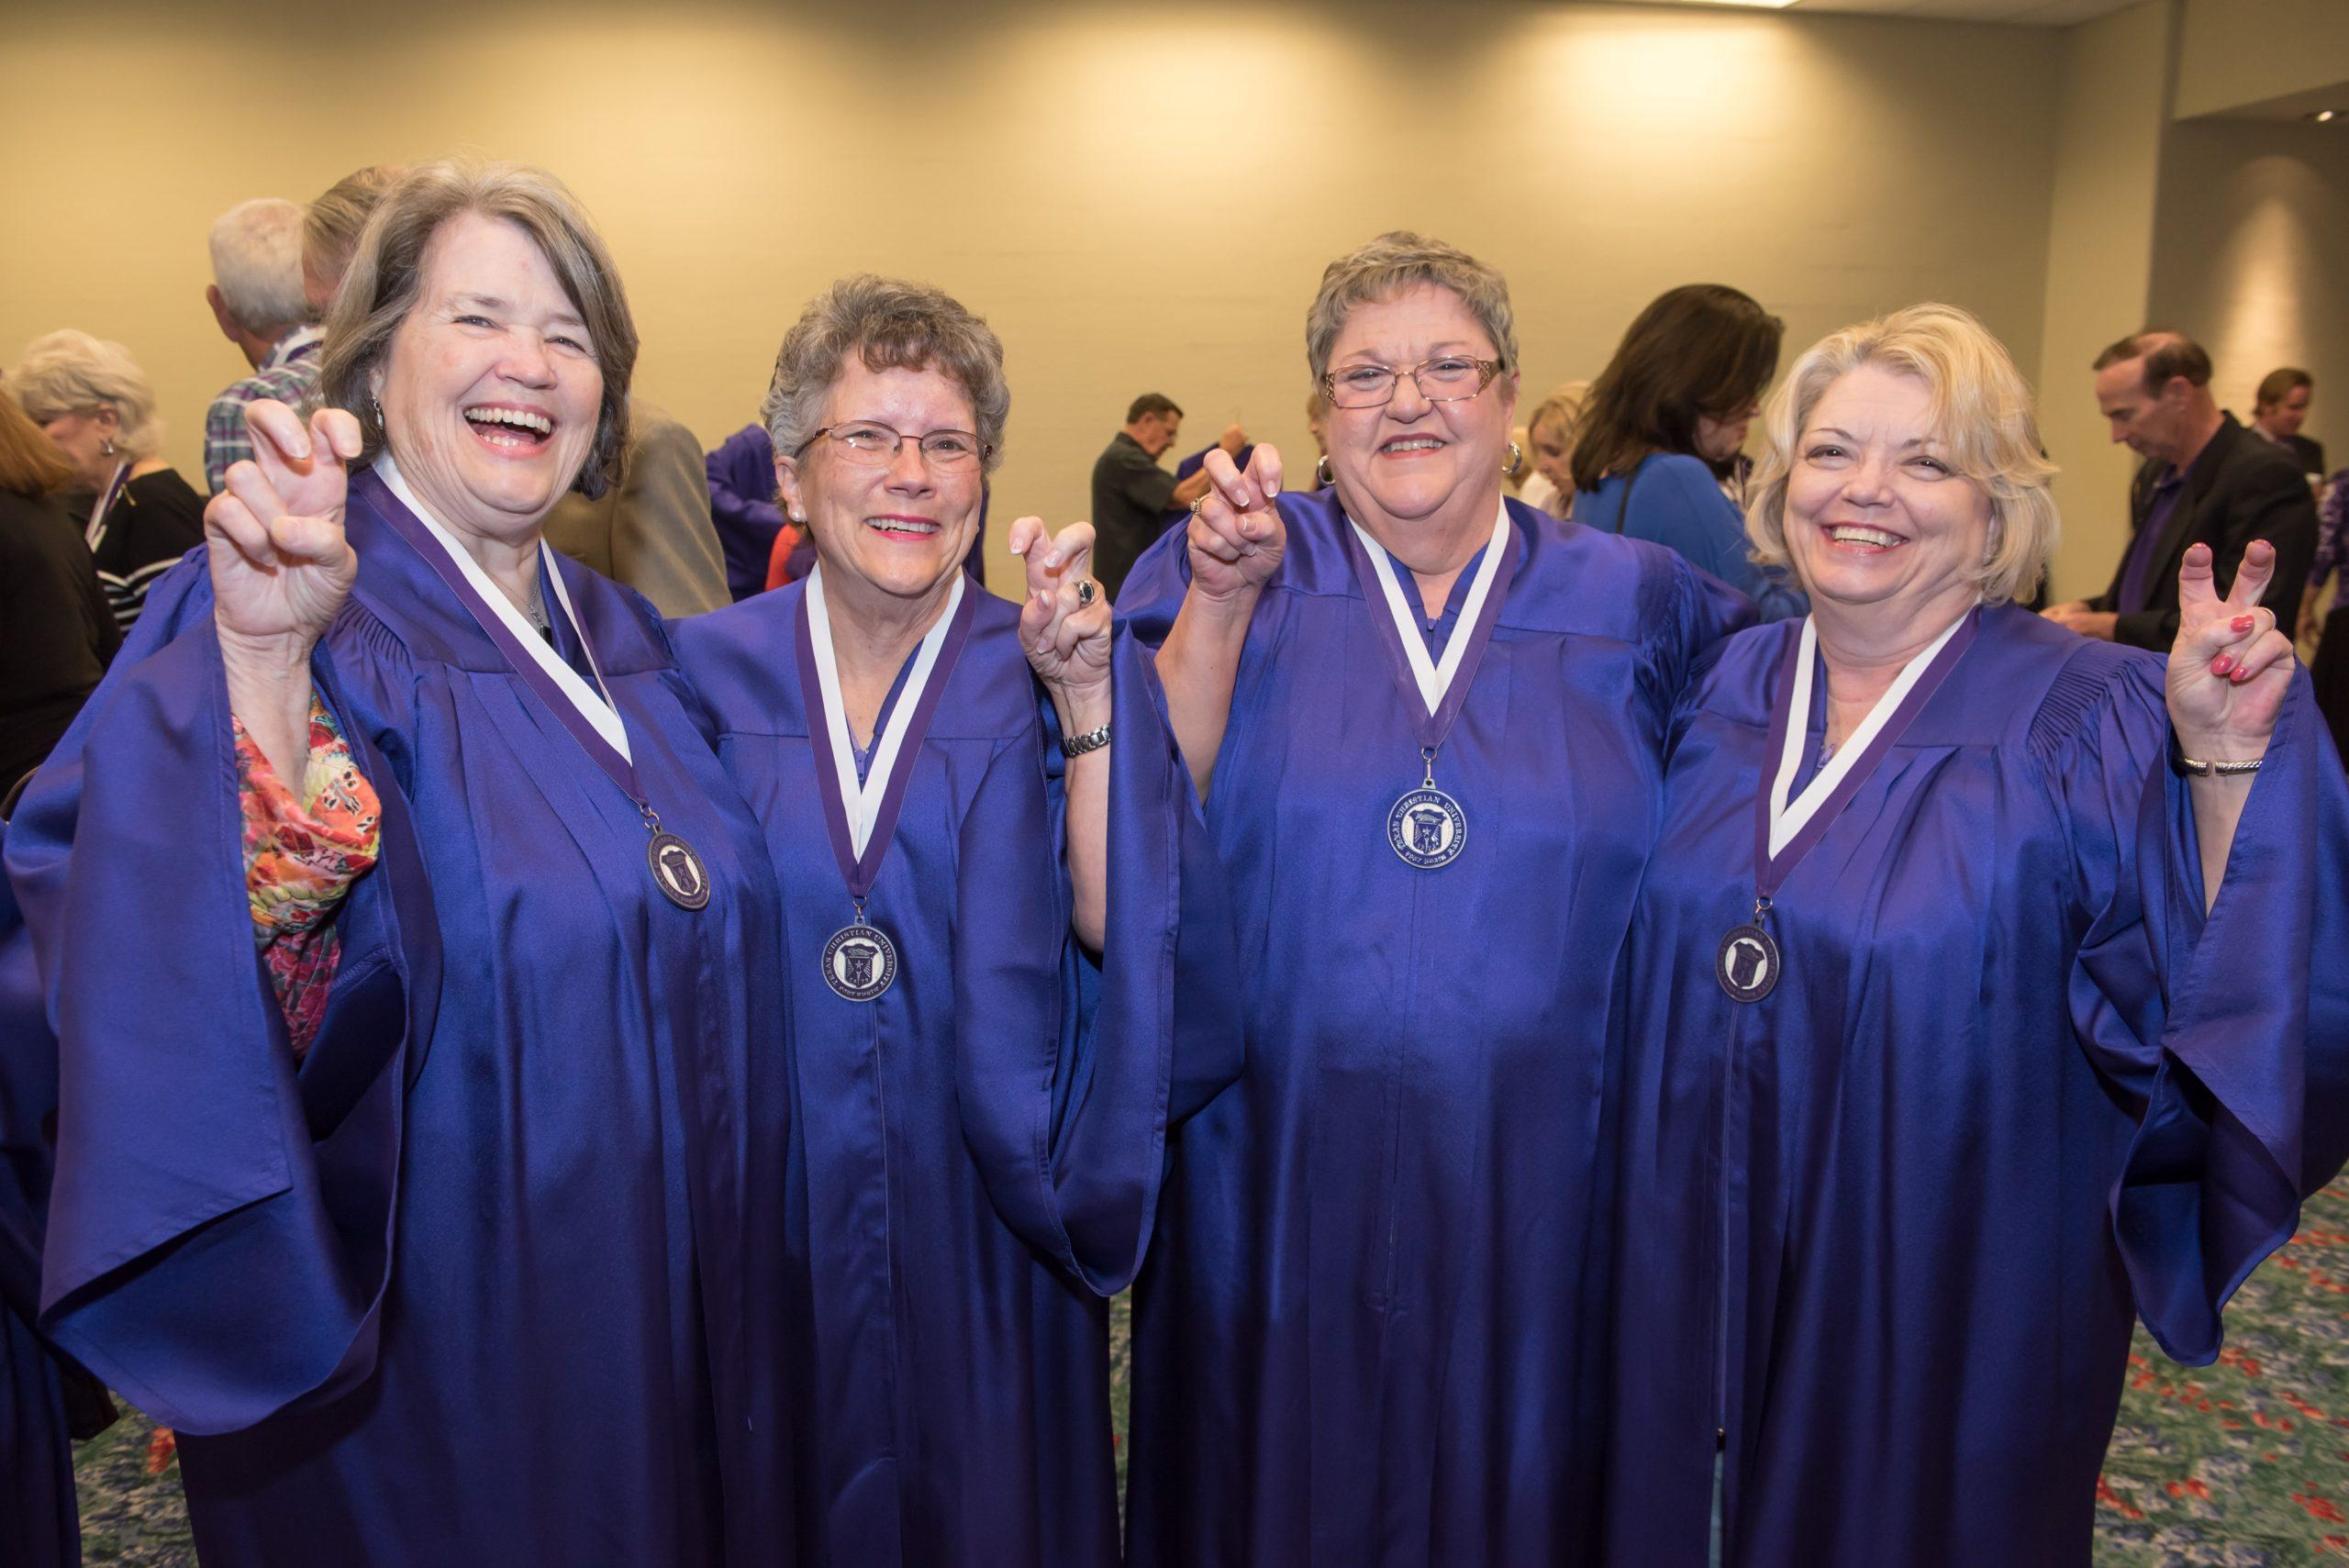 Members of the class of 1966 will wear a purple cap and gown one more time to walk in the graduation procession during spring commencement.